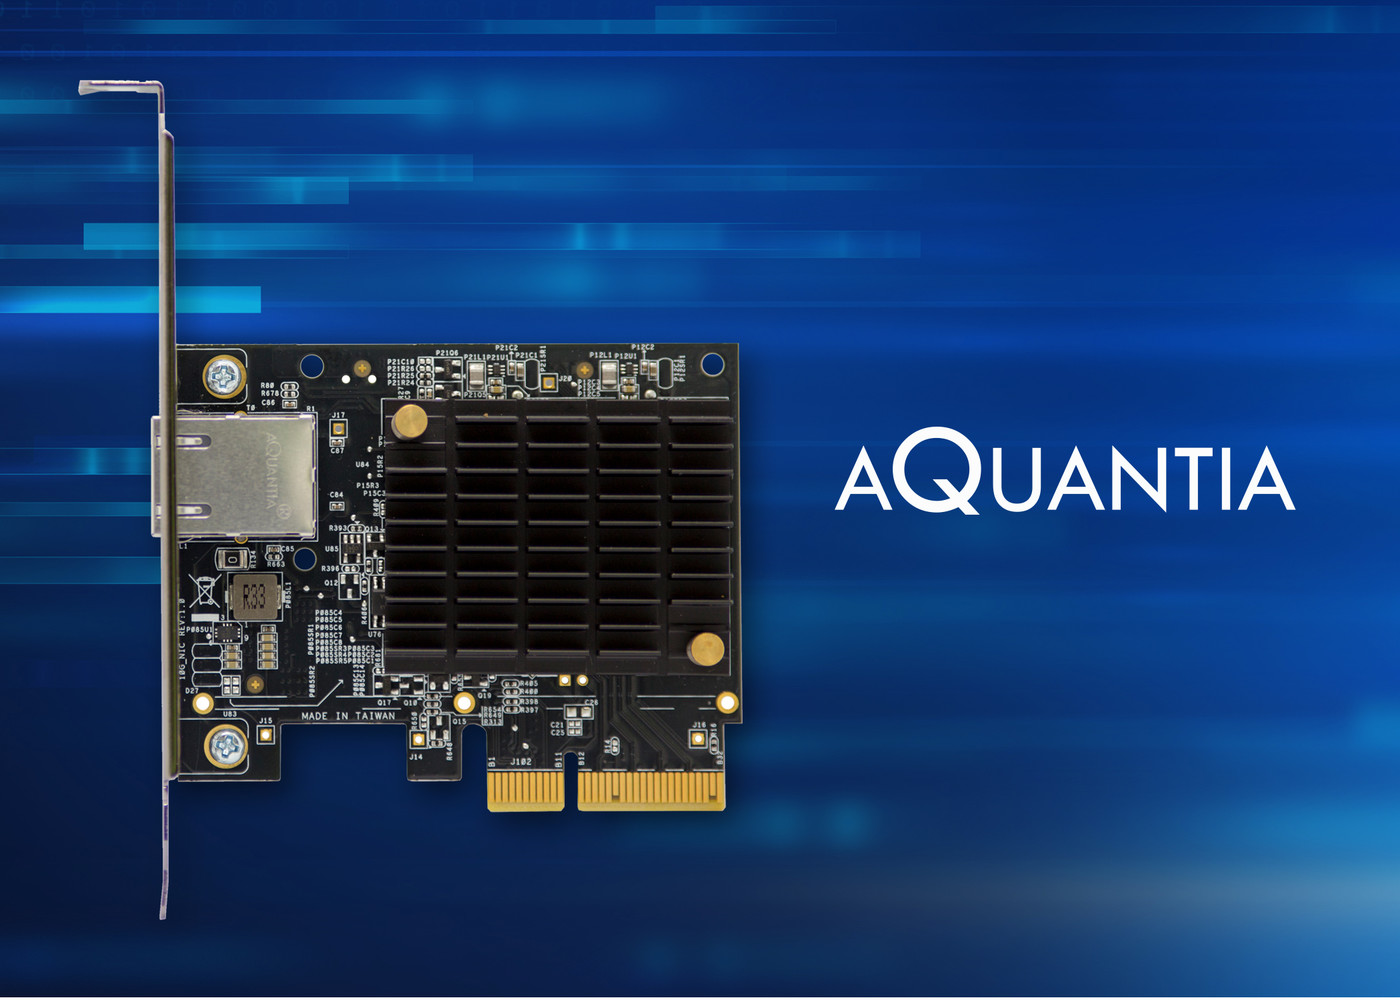 AQUANTIA AQTION 5GBIT GAMING NETWORK TREIBER WINDOWS 10